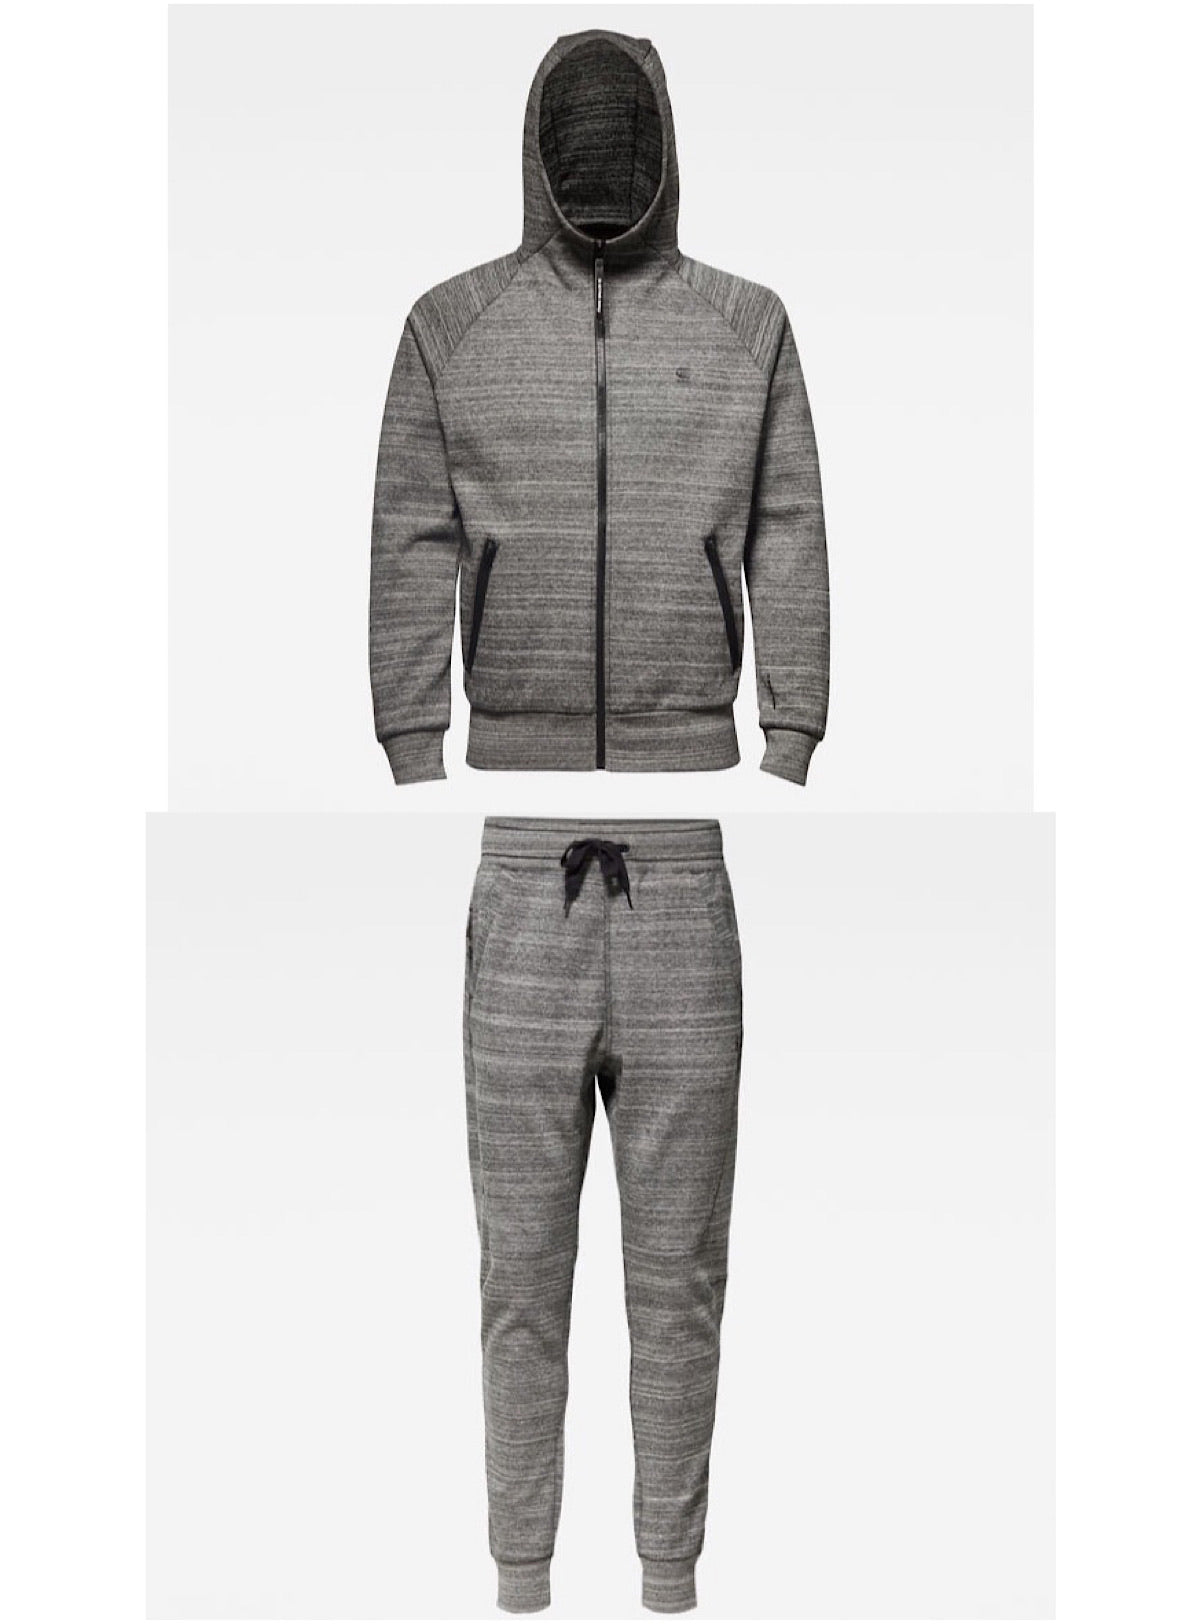 G-Star Sweatsuit - Aero Laah Slim - Grey - D14585